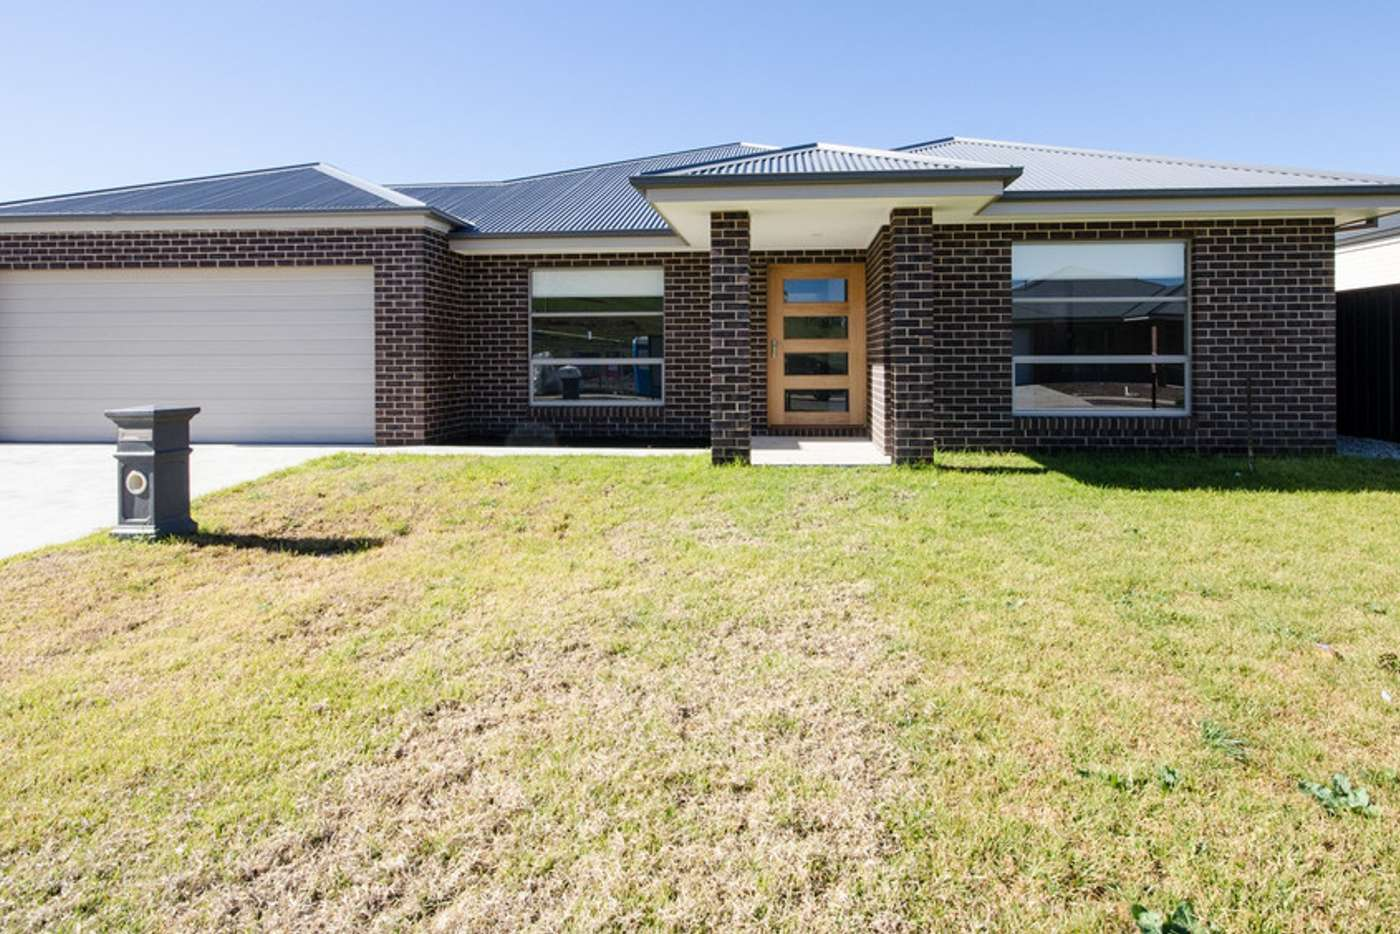 Main view of Homely house listing, 24 Strickland Street, Wodonga VIC 3690